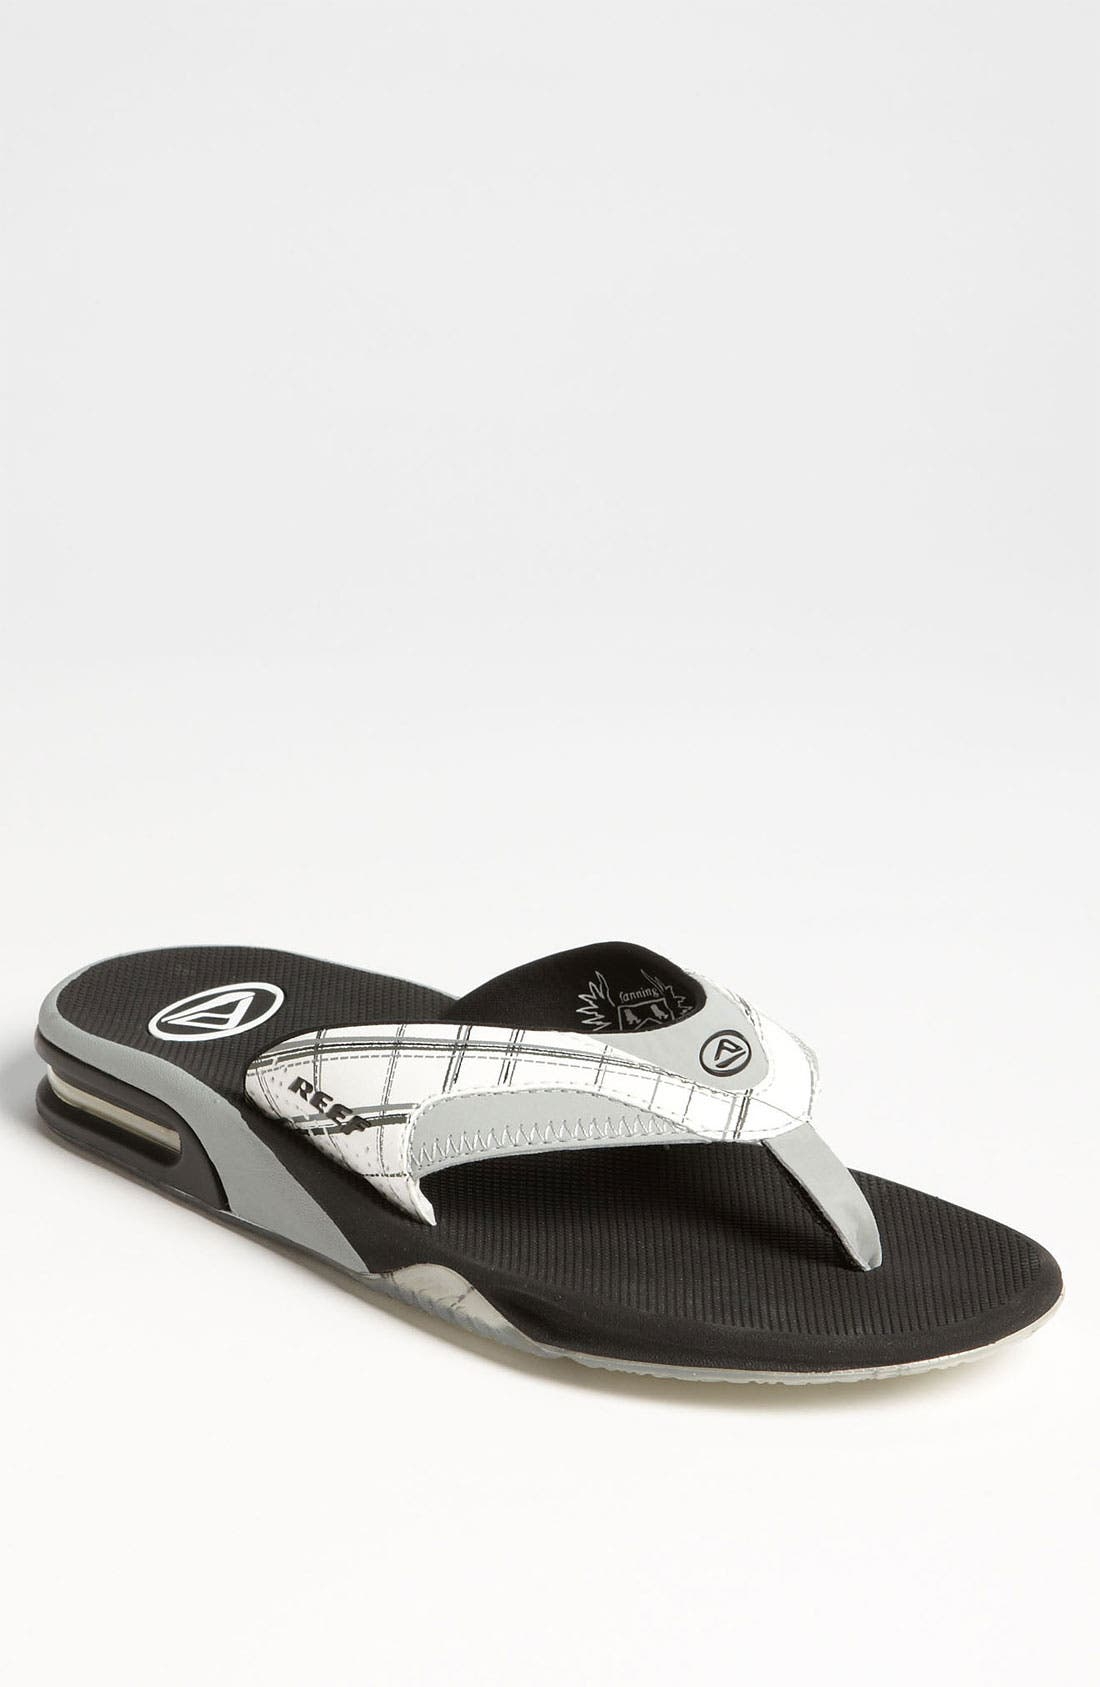 Alternate Image 1 Selected - Reef 'Fanning Plaid' Flip Flop